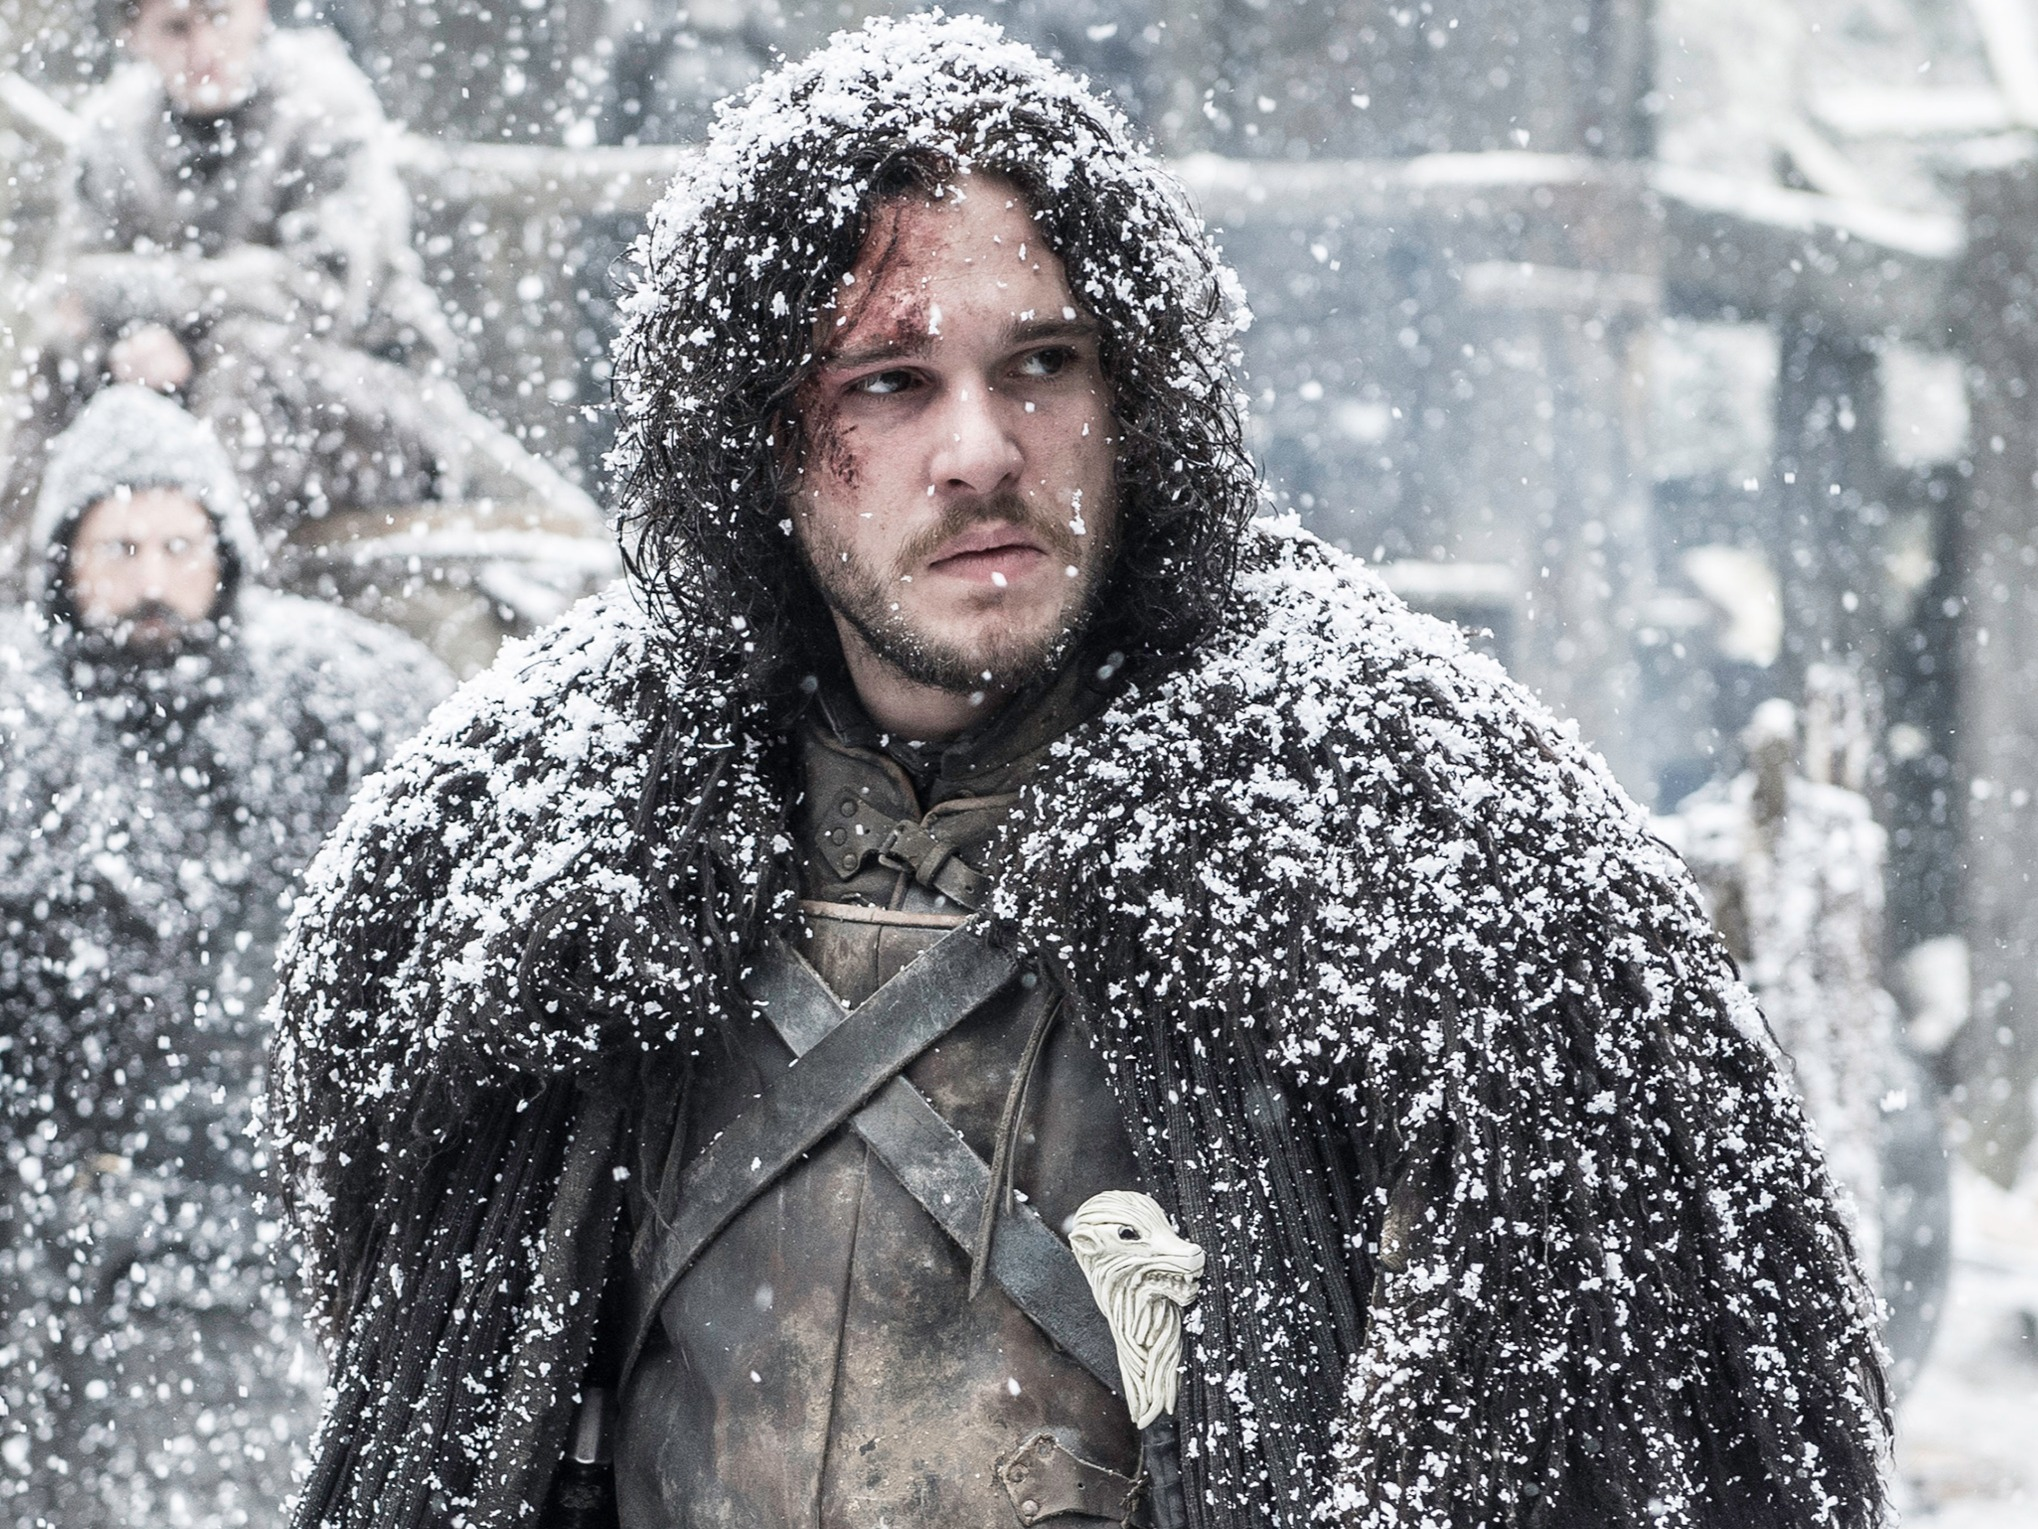 Are you a member of the Night's watch? if so click the image to swear your allegiance